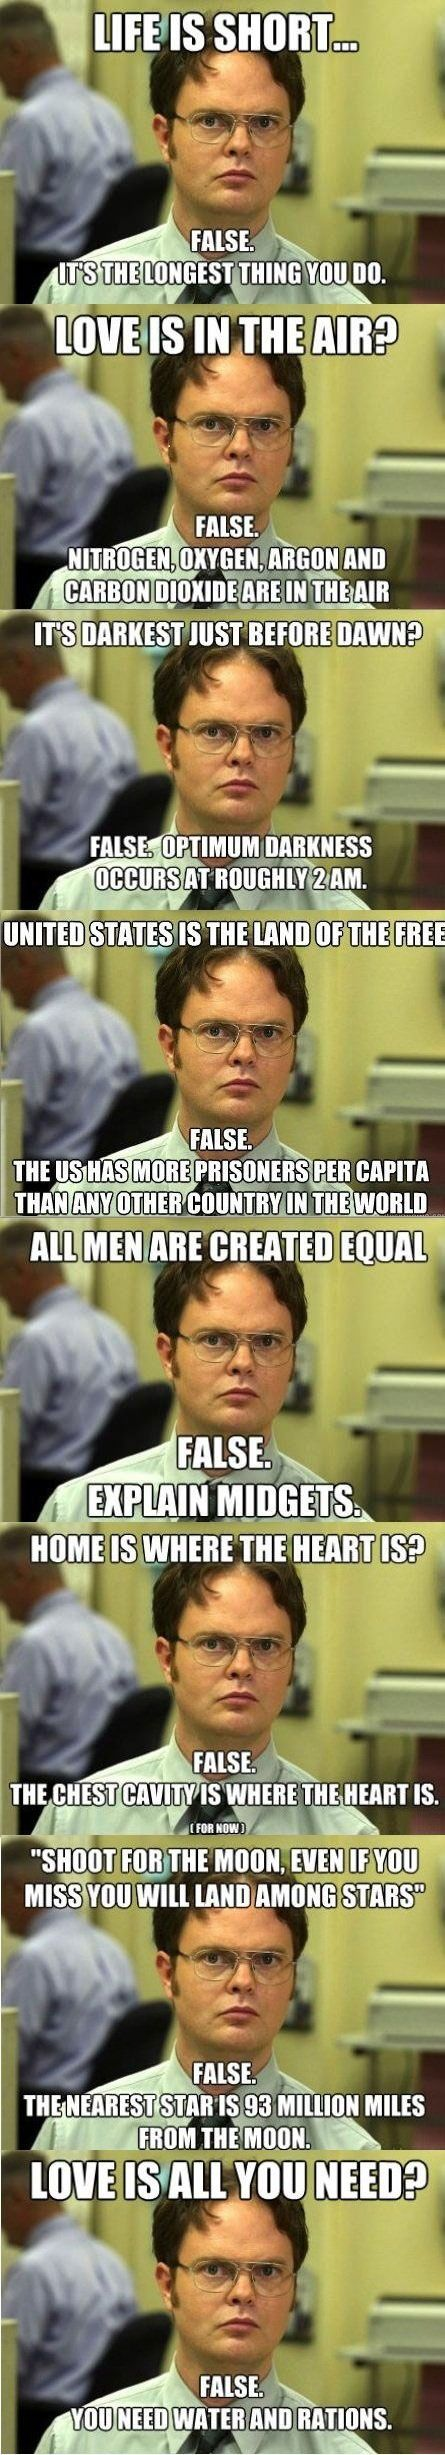 Dwight Schrute's logic